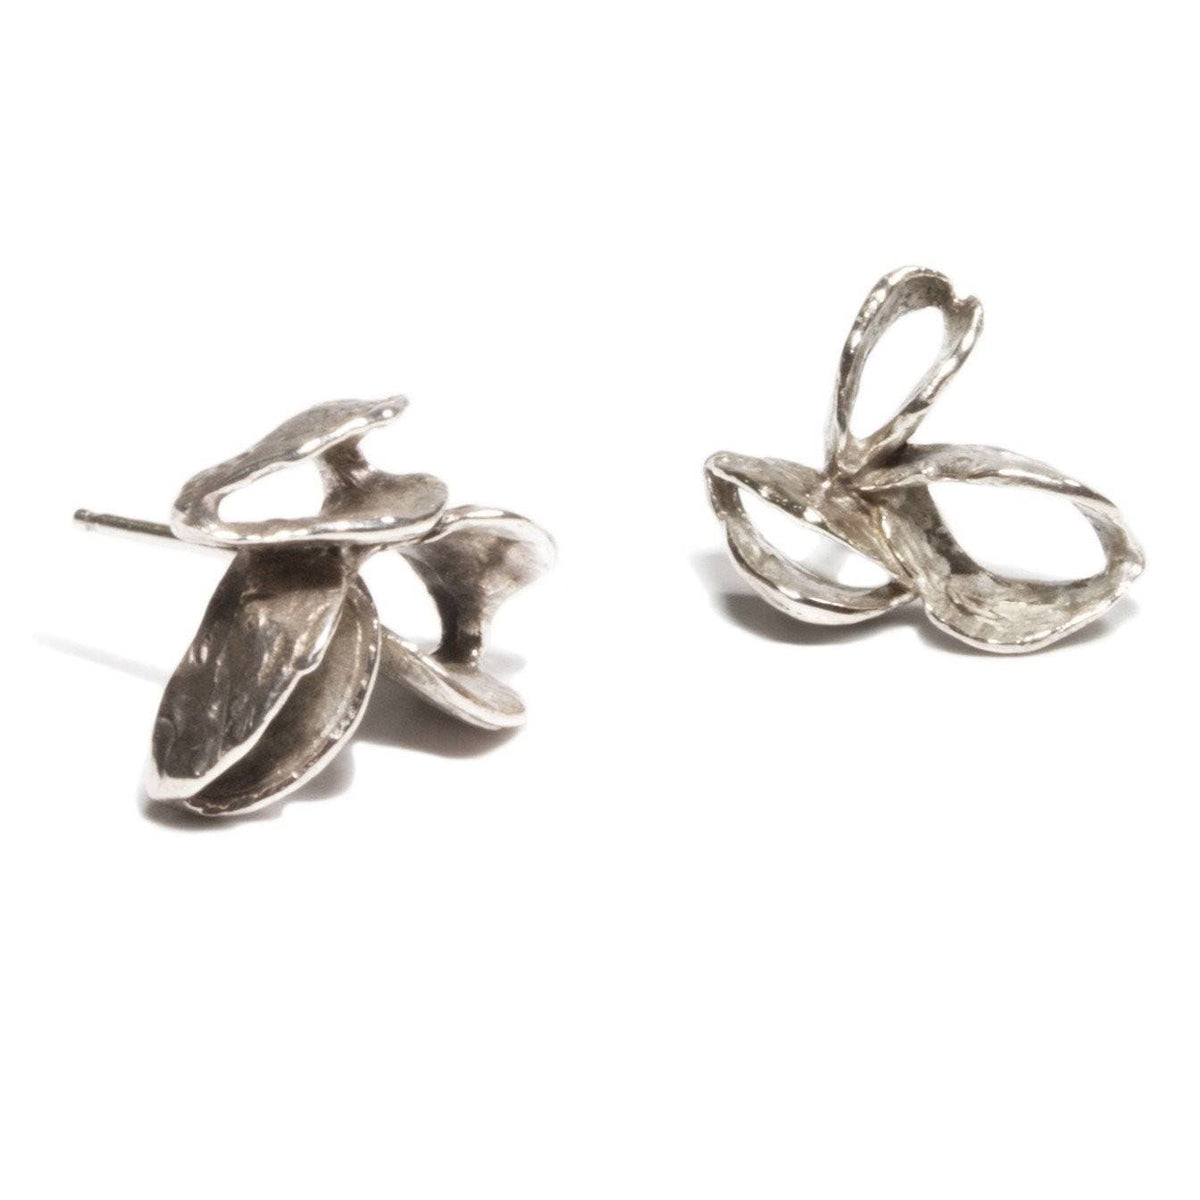 Banksia Pod Earrings - Silver